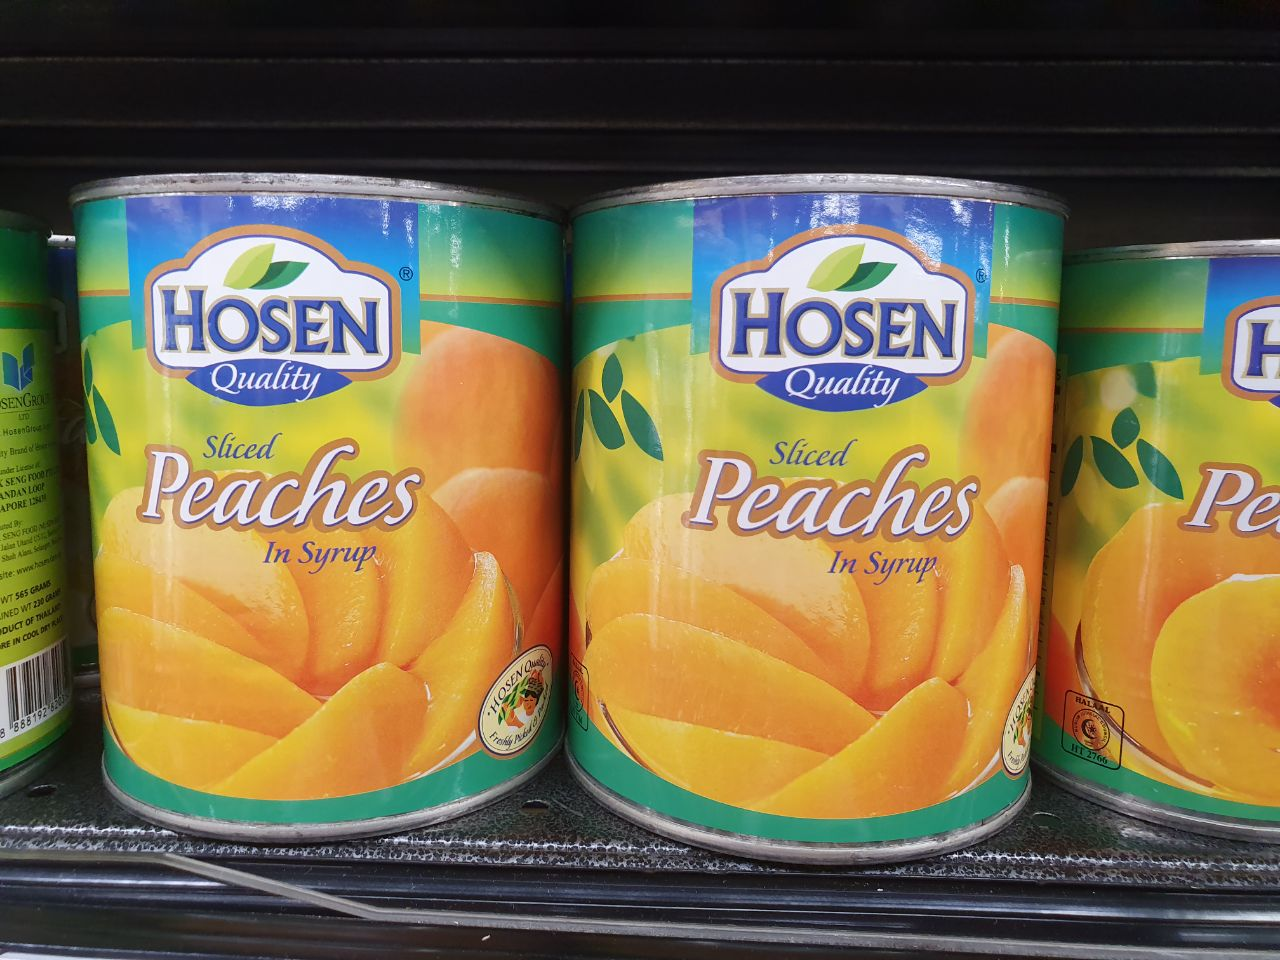 Canned food - sliced peaches